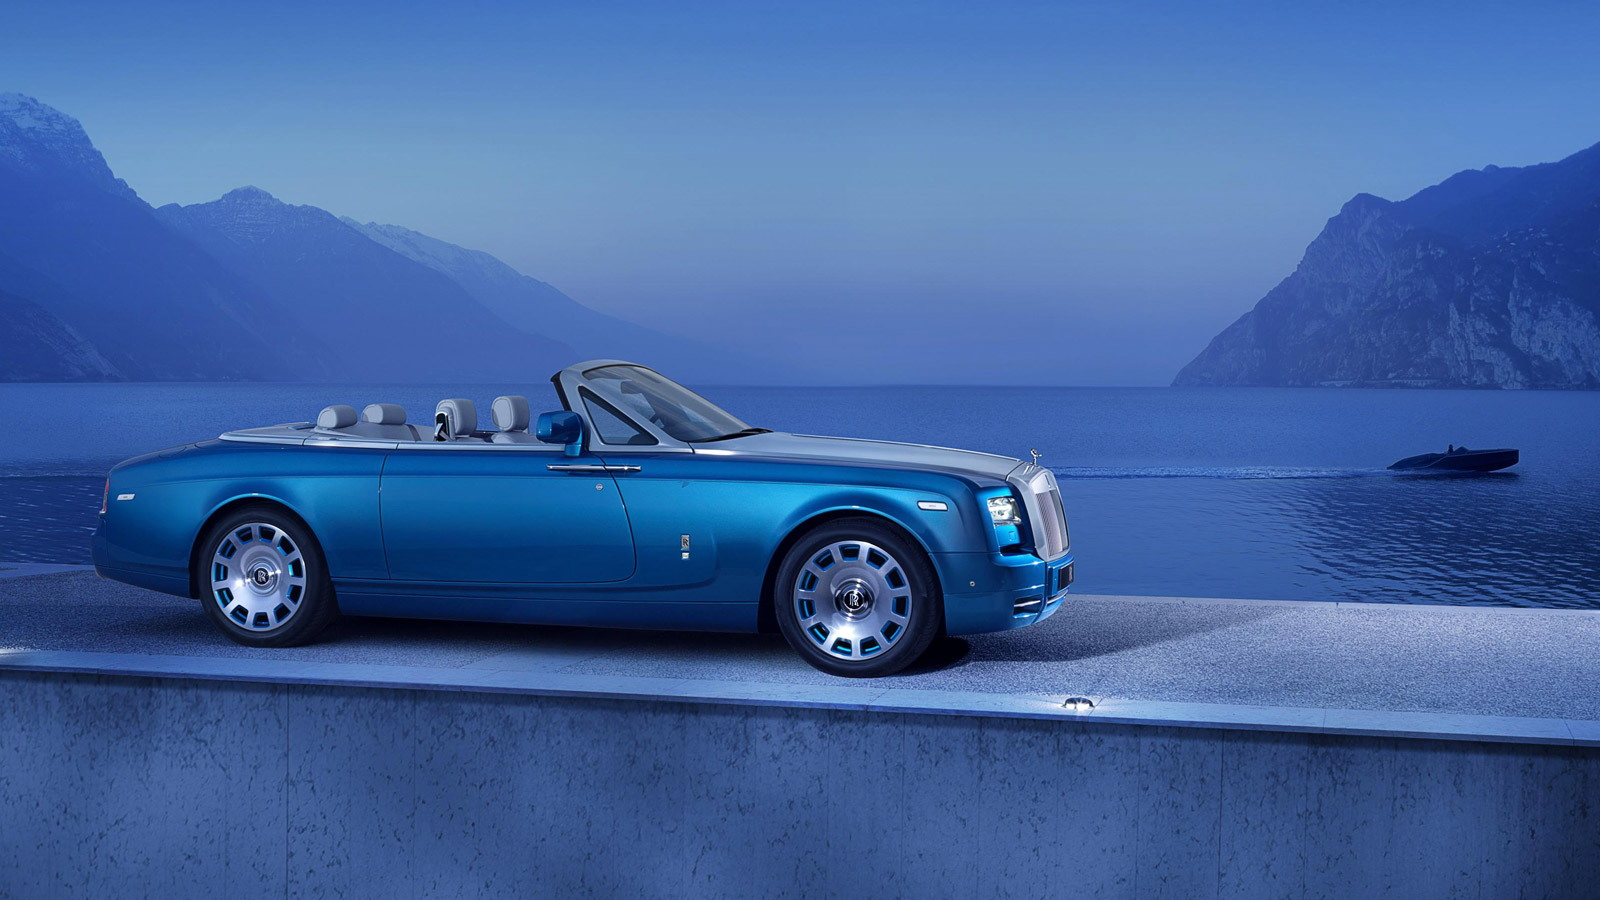 2014劳斯莱斯幻影Drophead Coupe Waterspeed系列